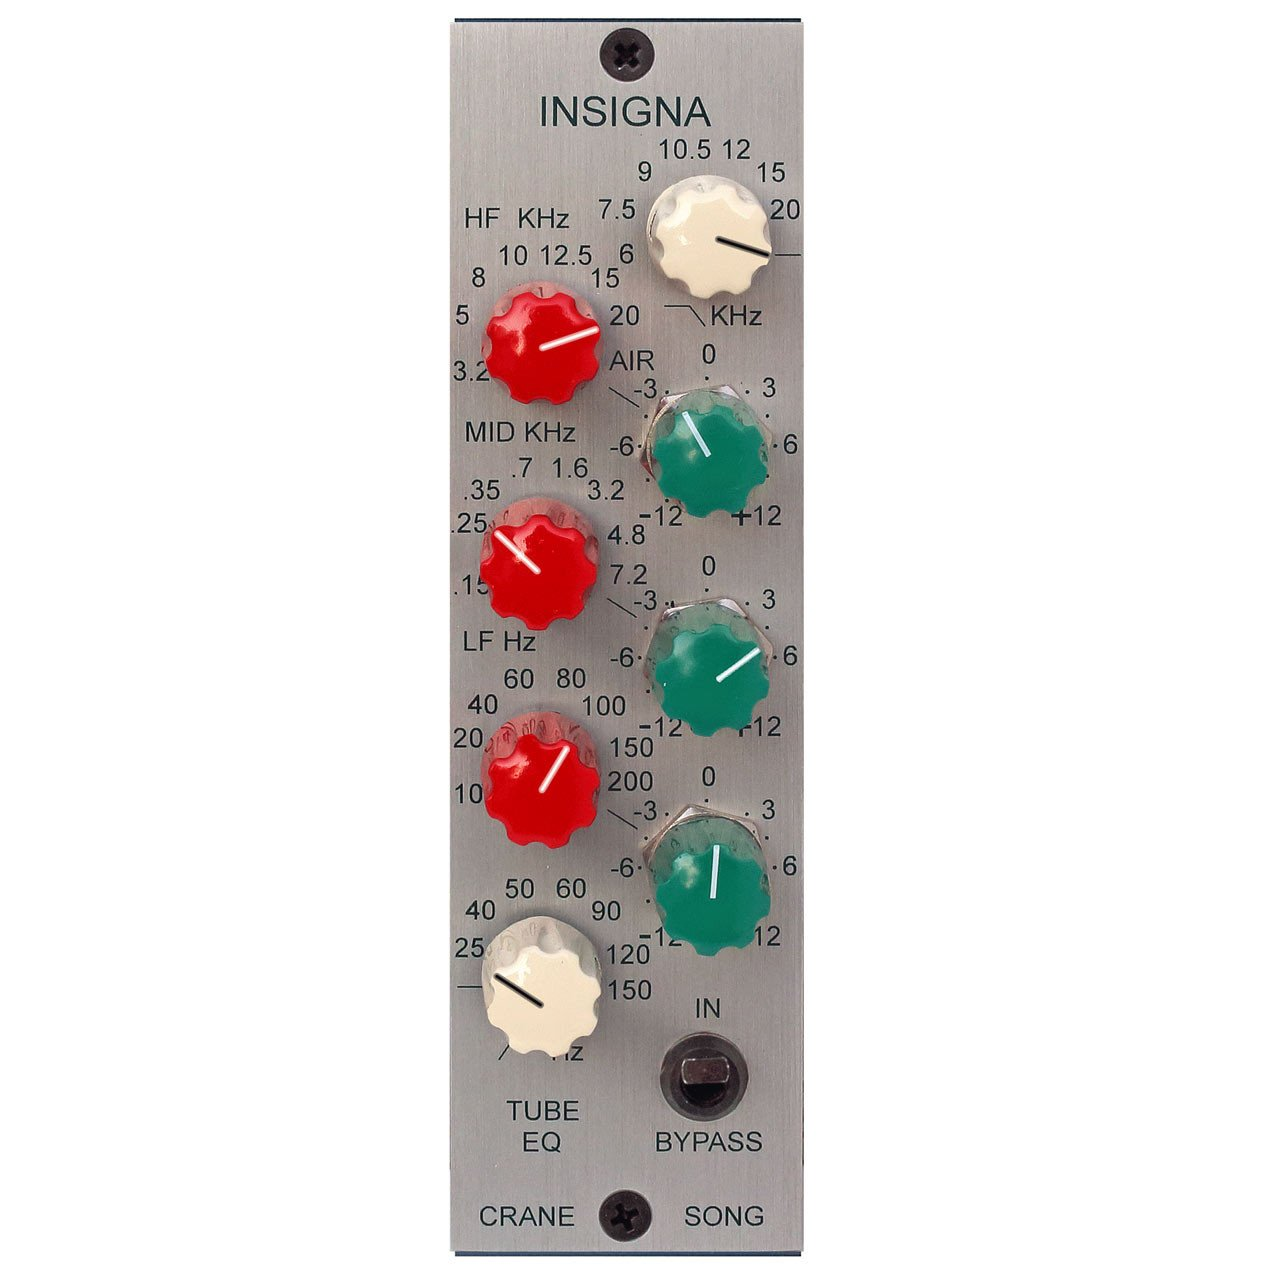 500 Series - Crane Song Insigna 500 Series Tube EQ